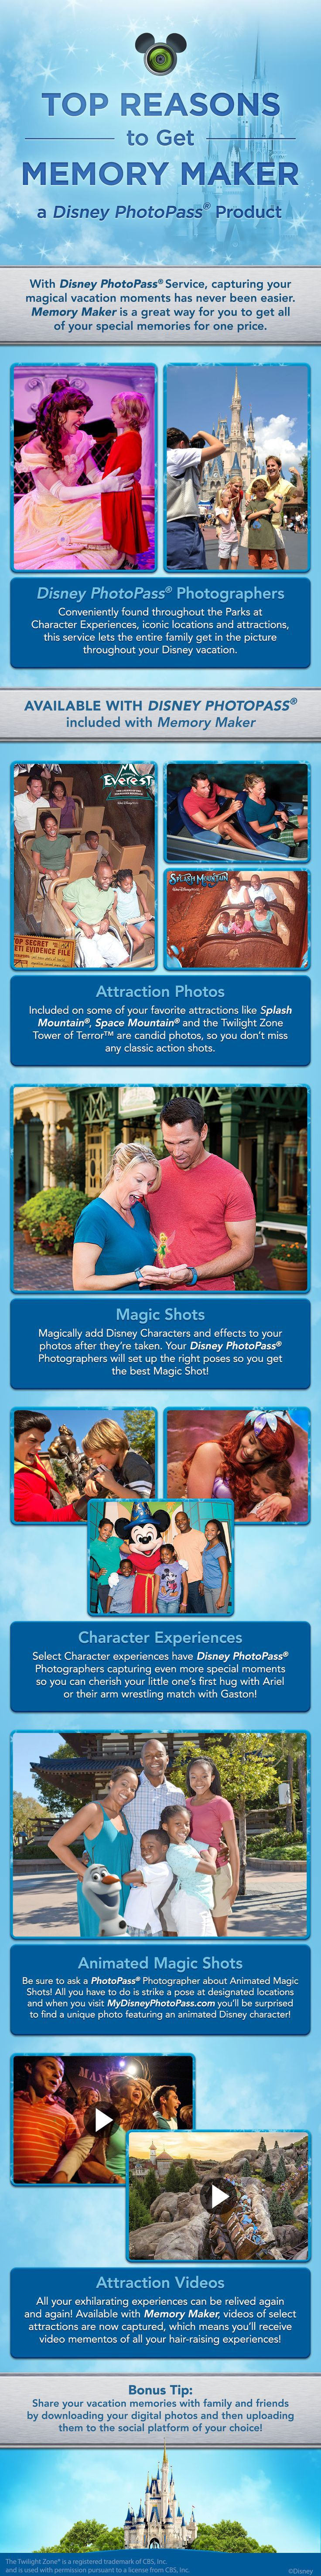 With Disney PhotoPass Service, capturing your Walt Disney World Resort magical vacation moments has never been easier! Memory Maker is a great way for you to get all of your special memories for one price. Let our 3D Travel Specialists help you plan your magical trip! #3DTC